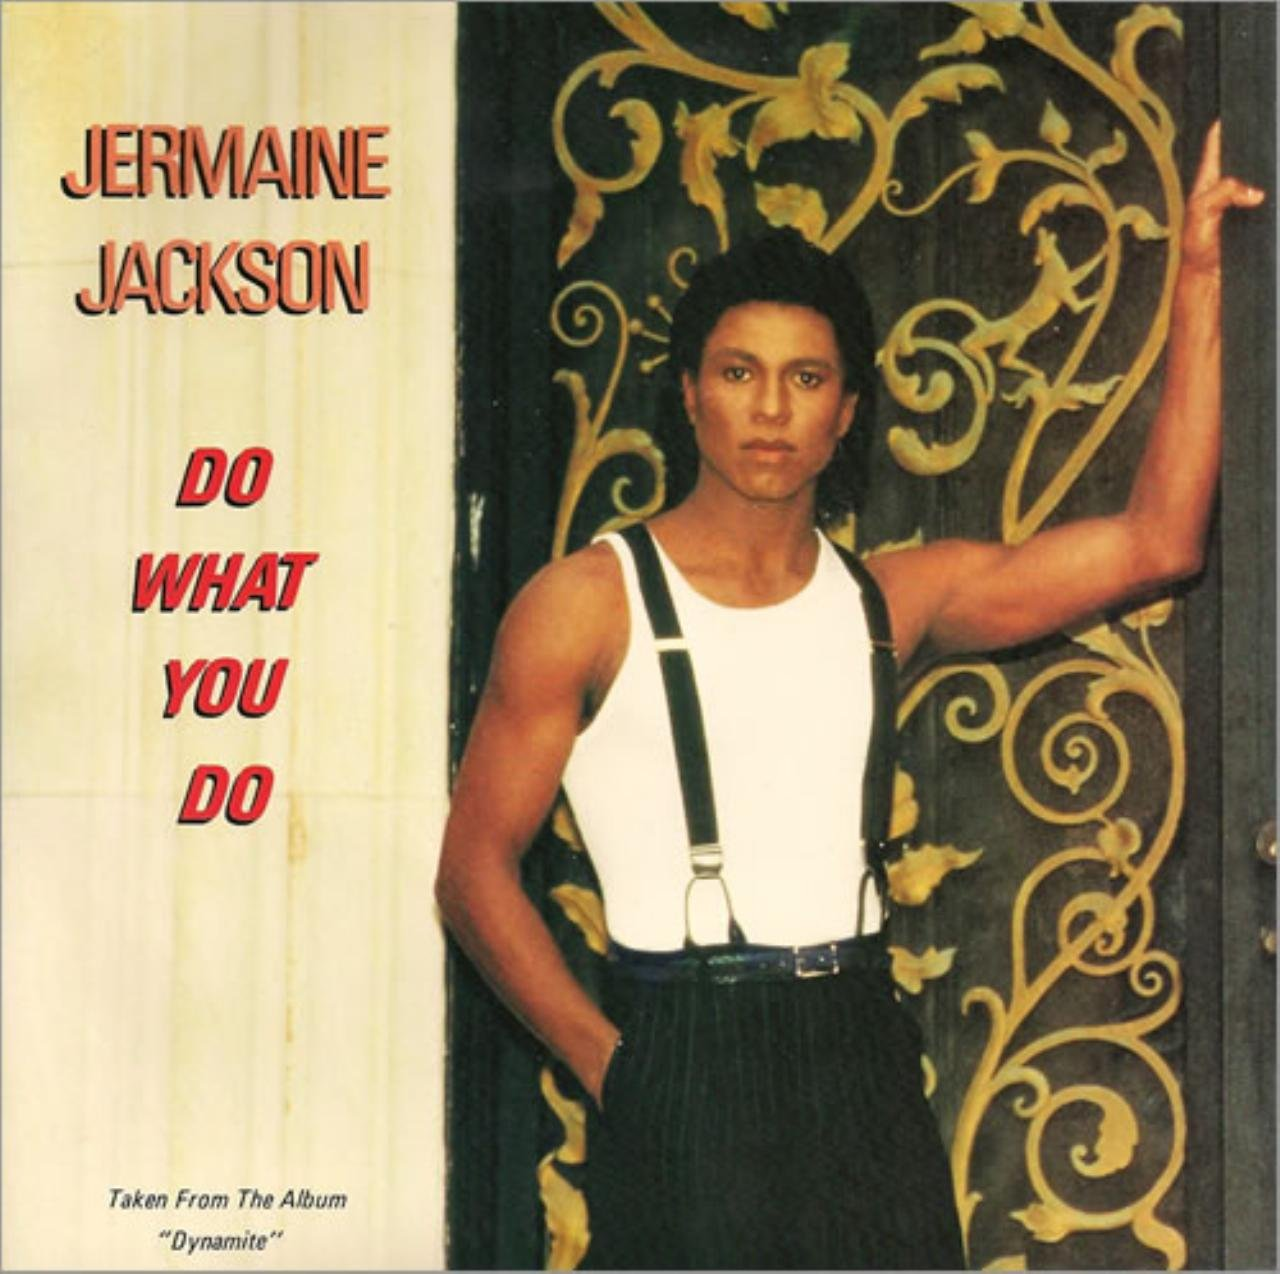 Jermaine Jackson Album: Do What You Do